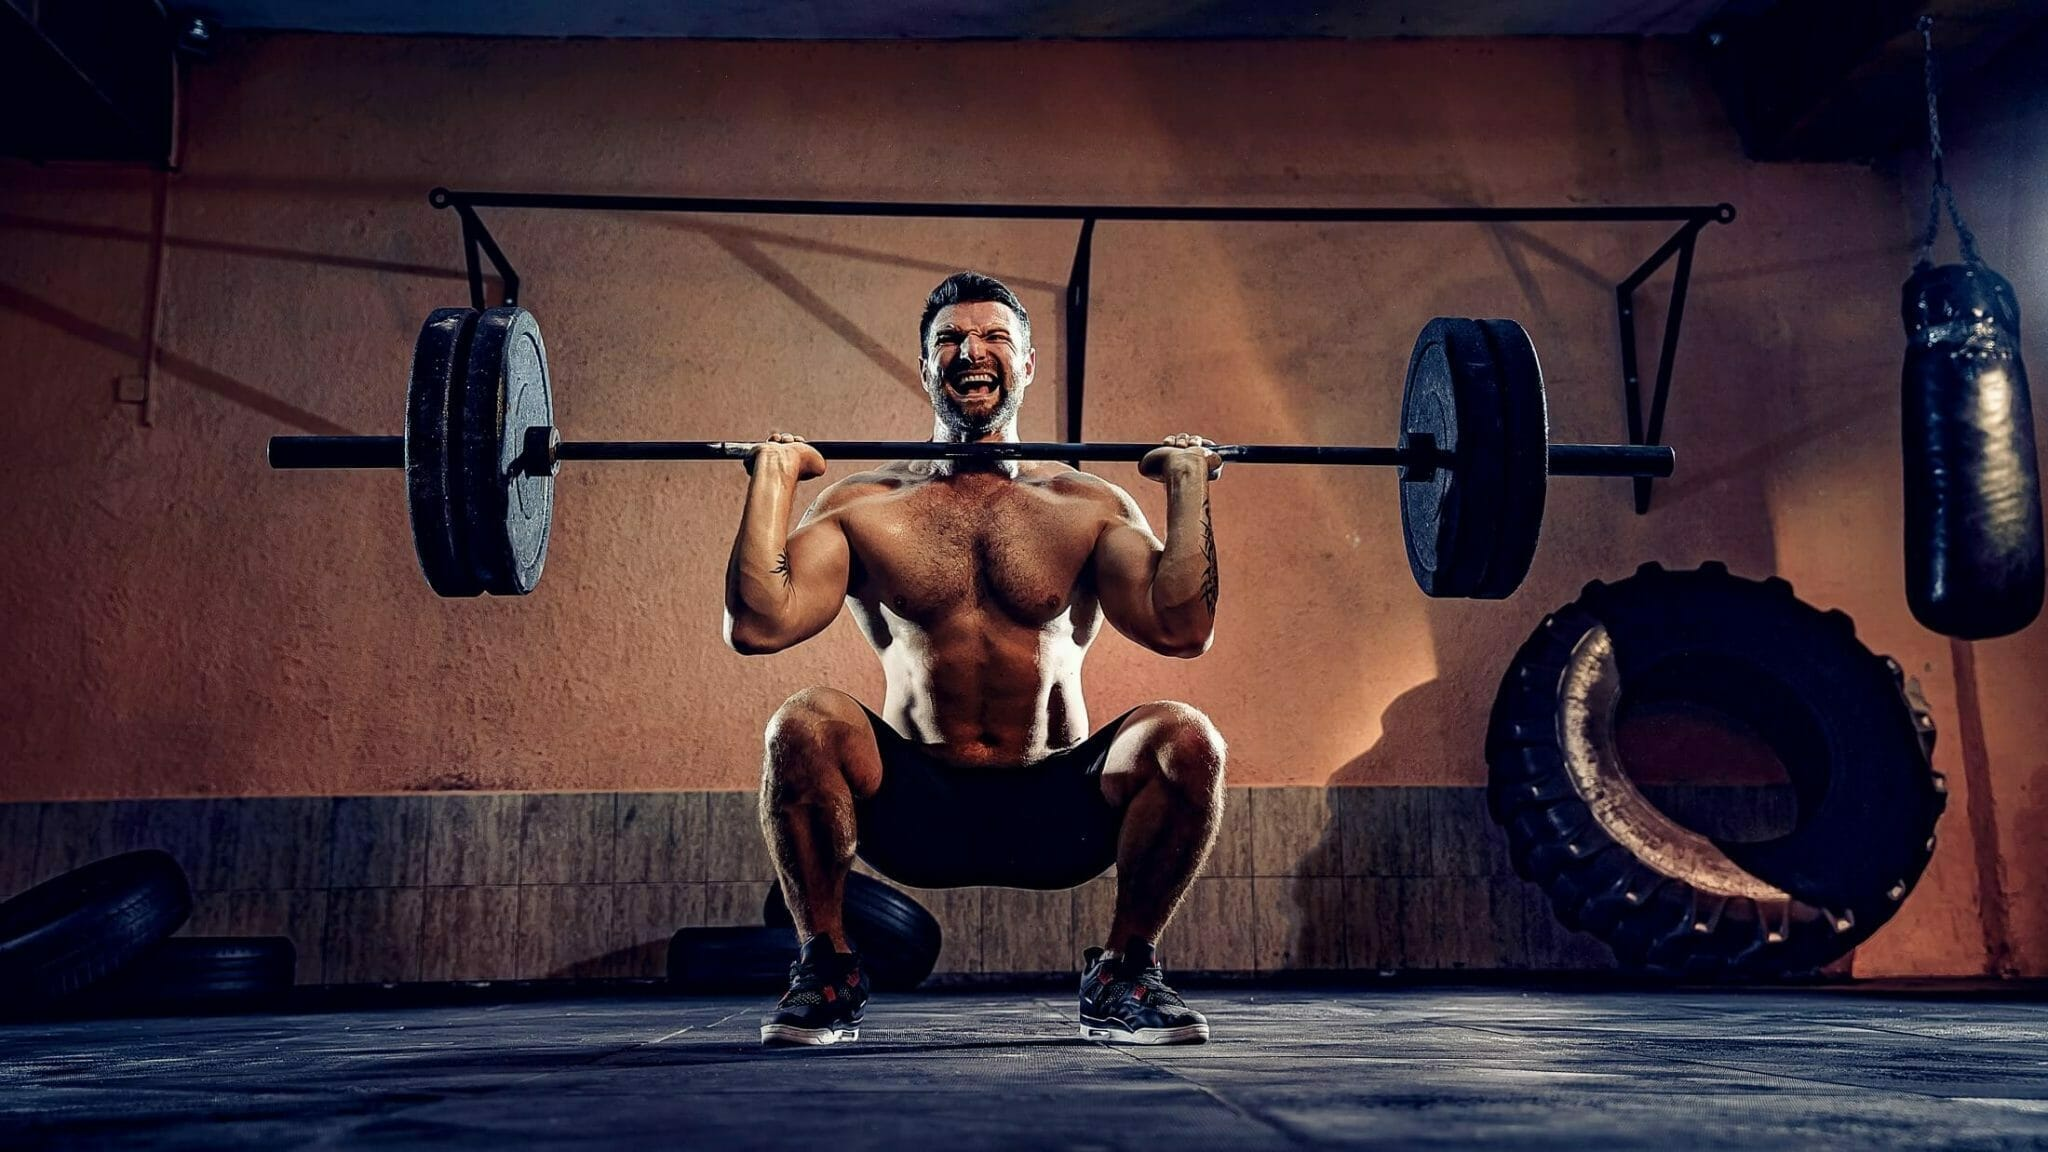 Man in squat with weights in middle of lifting while using incorrect powerlifting shoes.